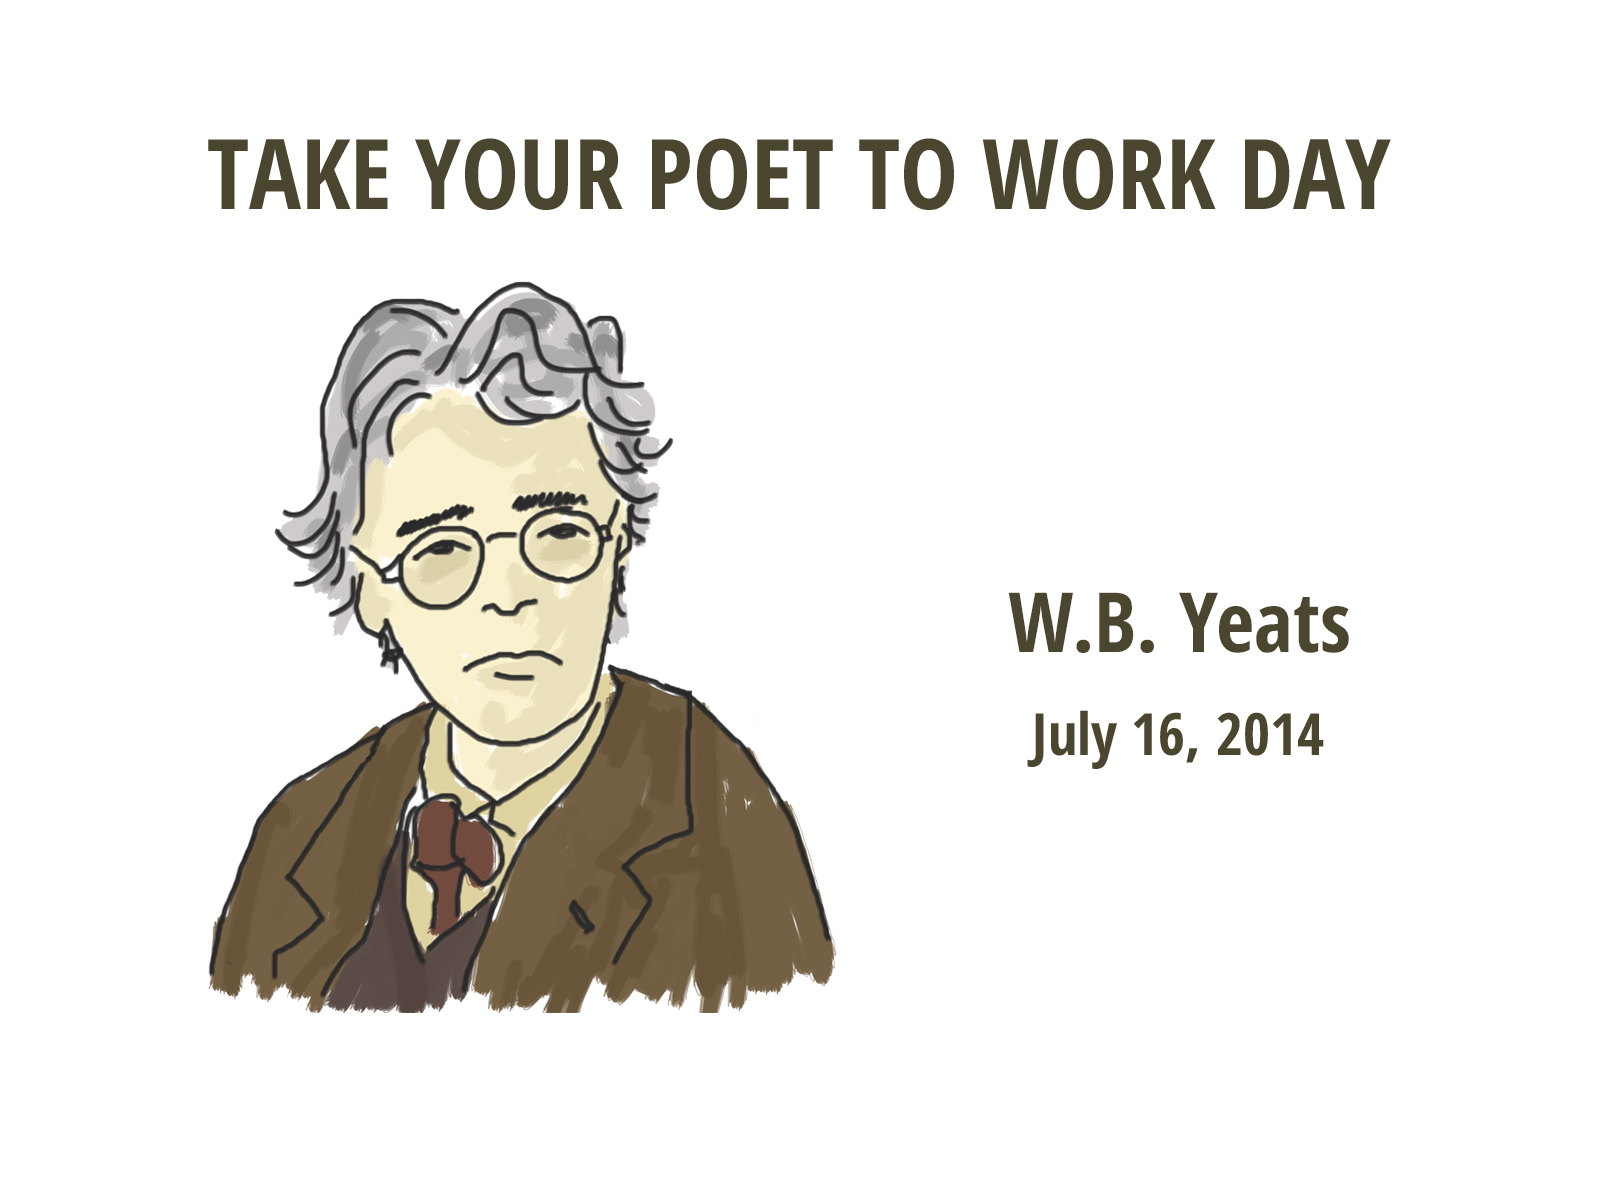 Book Quote Wallpaper Edgar Allan Poe Take Your Poet To Work W B Yeats